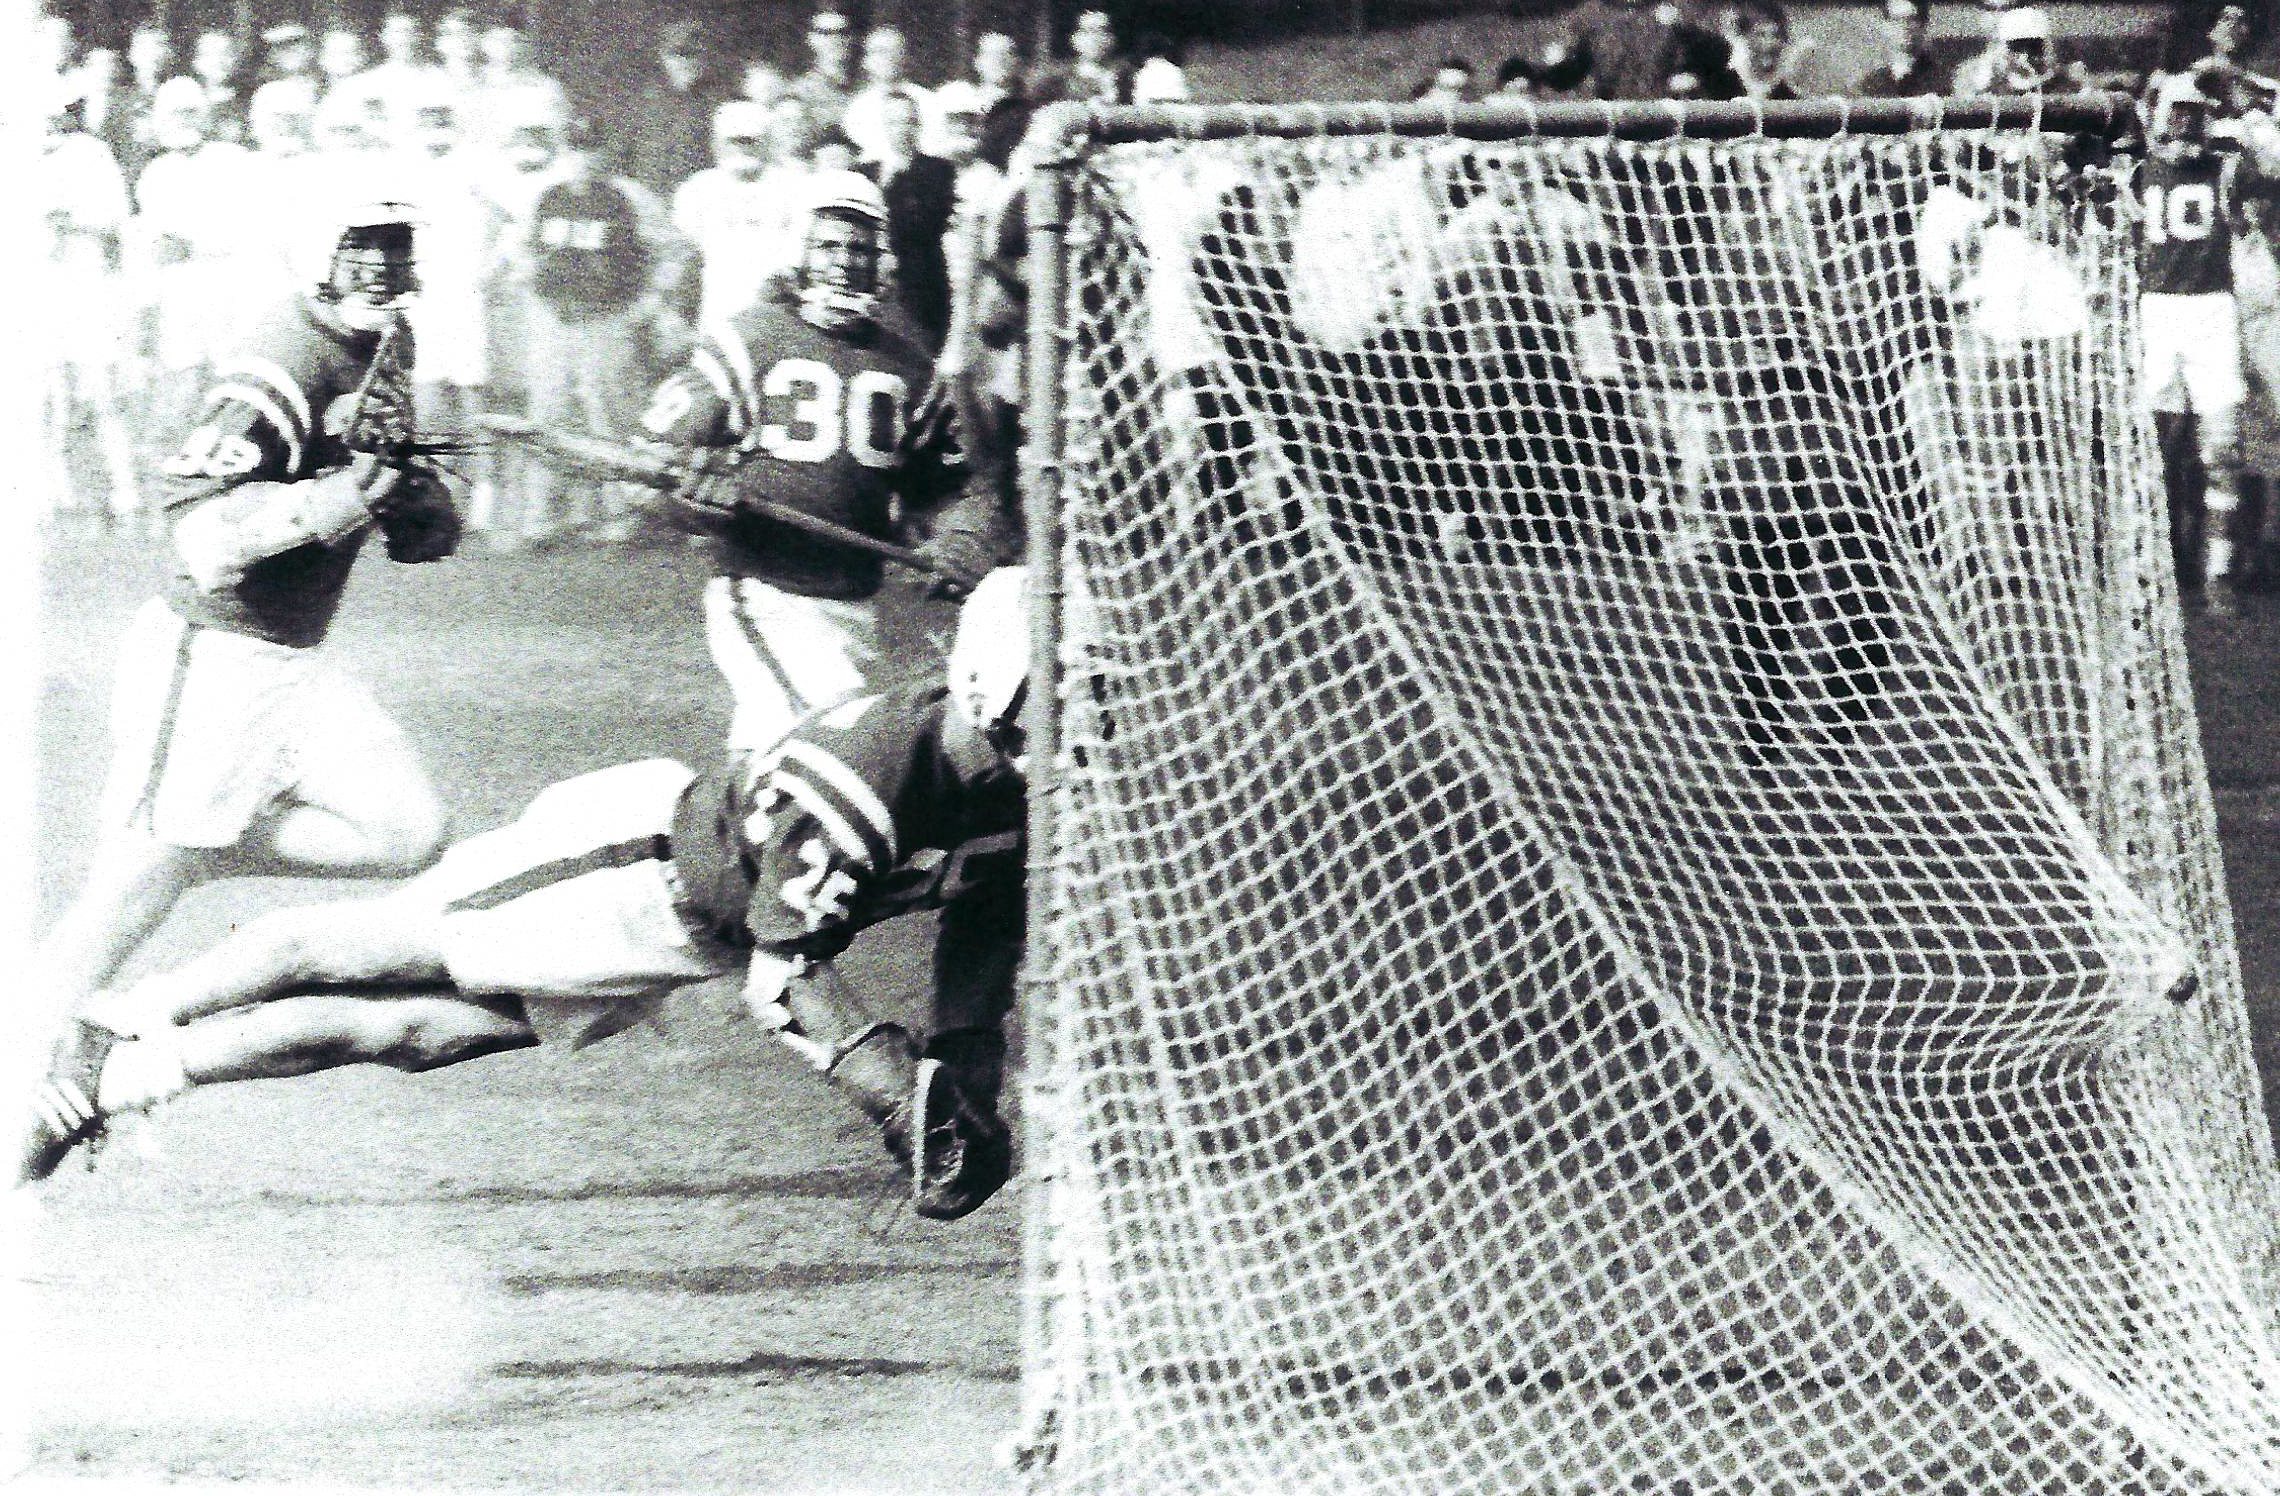 """""""The Original Dive,"""" Bruce Cohen diving toward the goal and scoring against Yale, April 16, 1966, Courtesy of Bruce Cohen"""